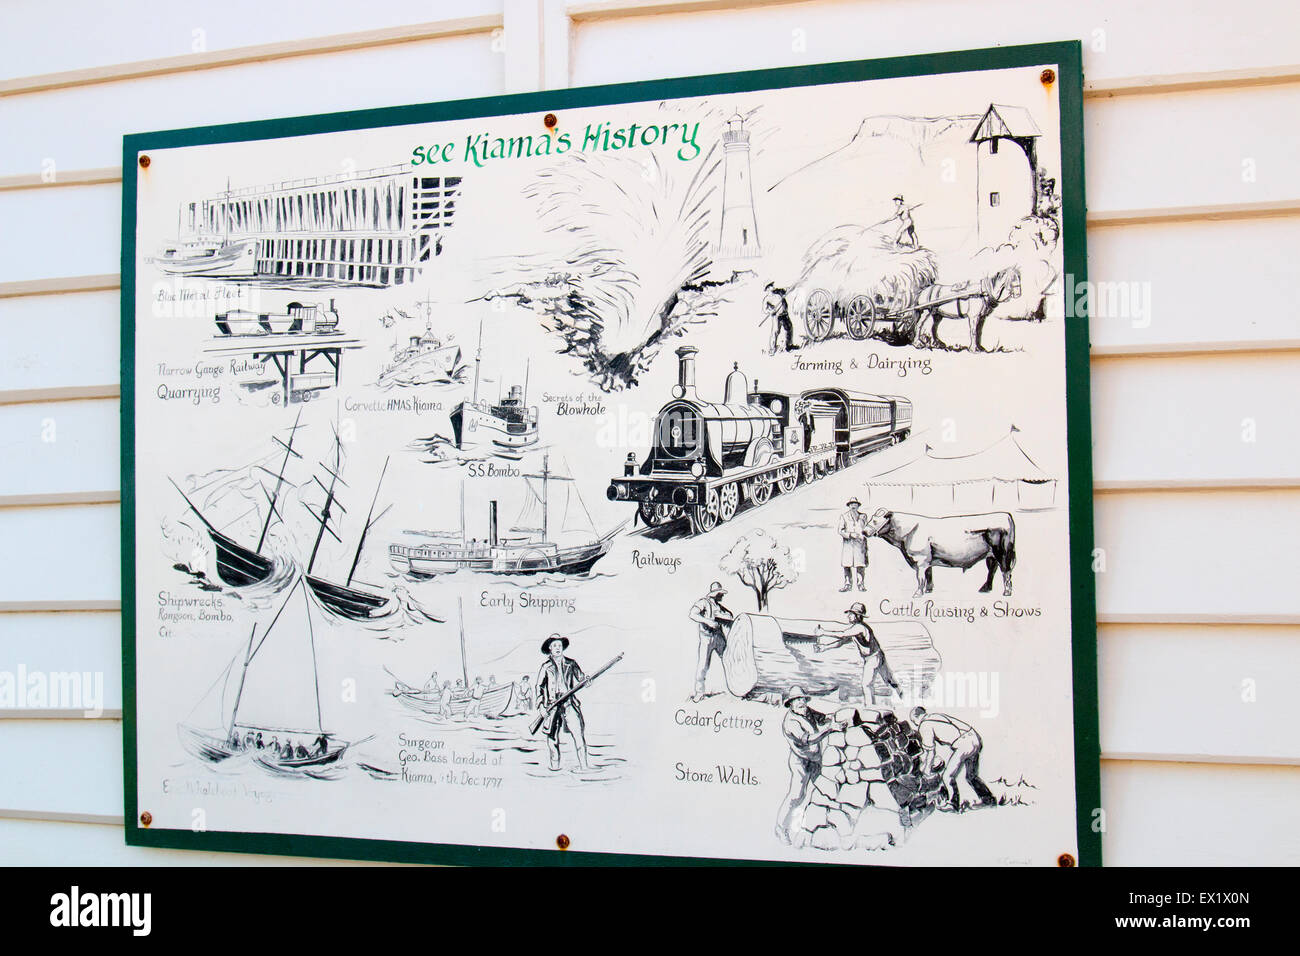 History of Kiama a popular coastal town on the south coast of new south wales,about 2 hours from Sydney,australia - Stock Image